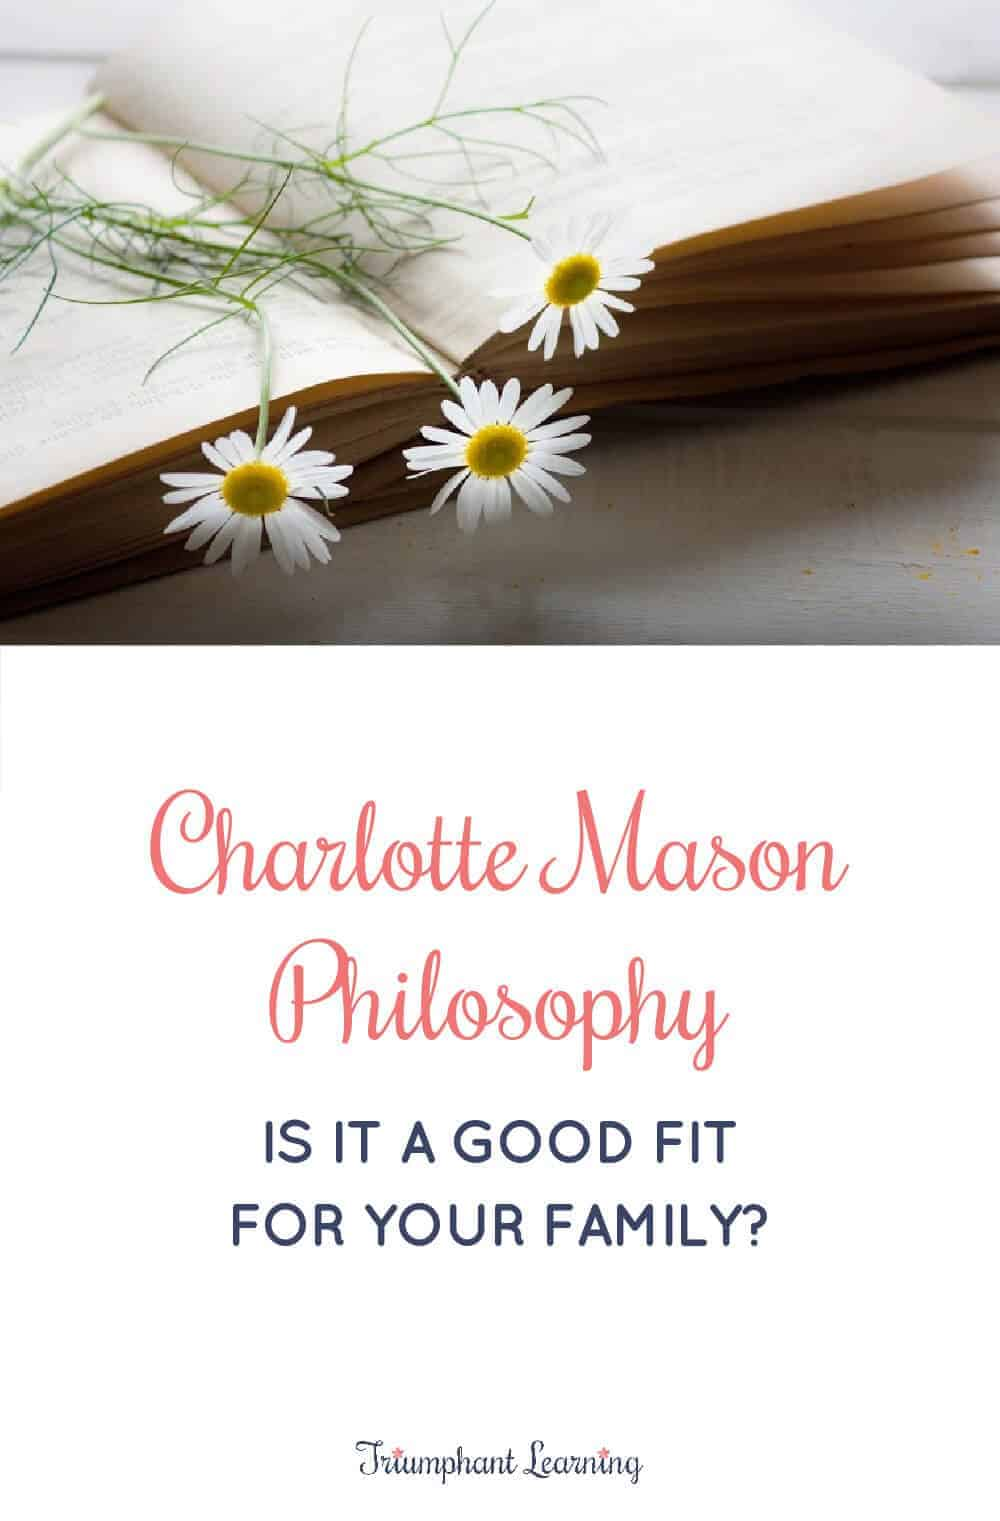 Learn how to know if the Charlotte Mason philosophy is a good fit for your family and practical tips to help you get started. via @TriLearning